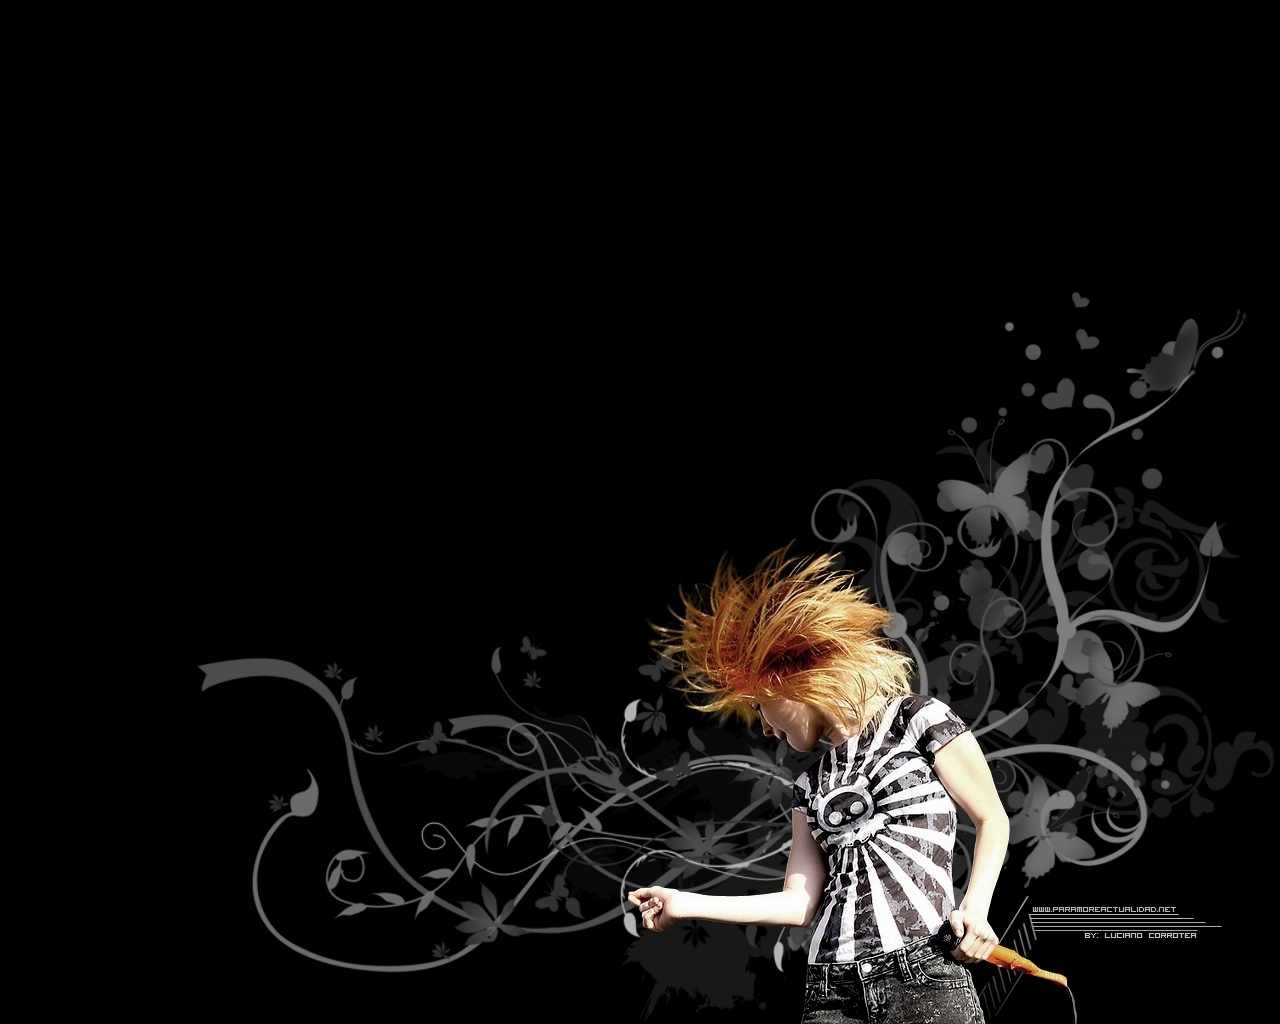 Paramore: Hayley Williams (Wallpaper) - Paramore Wallpaper ...